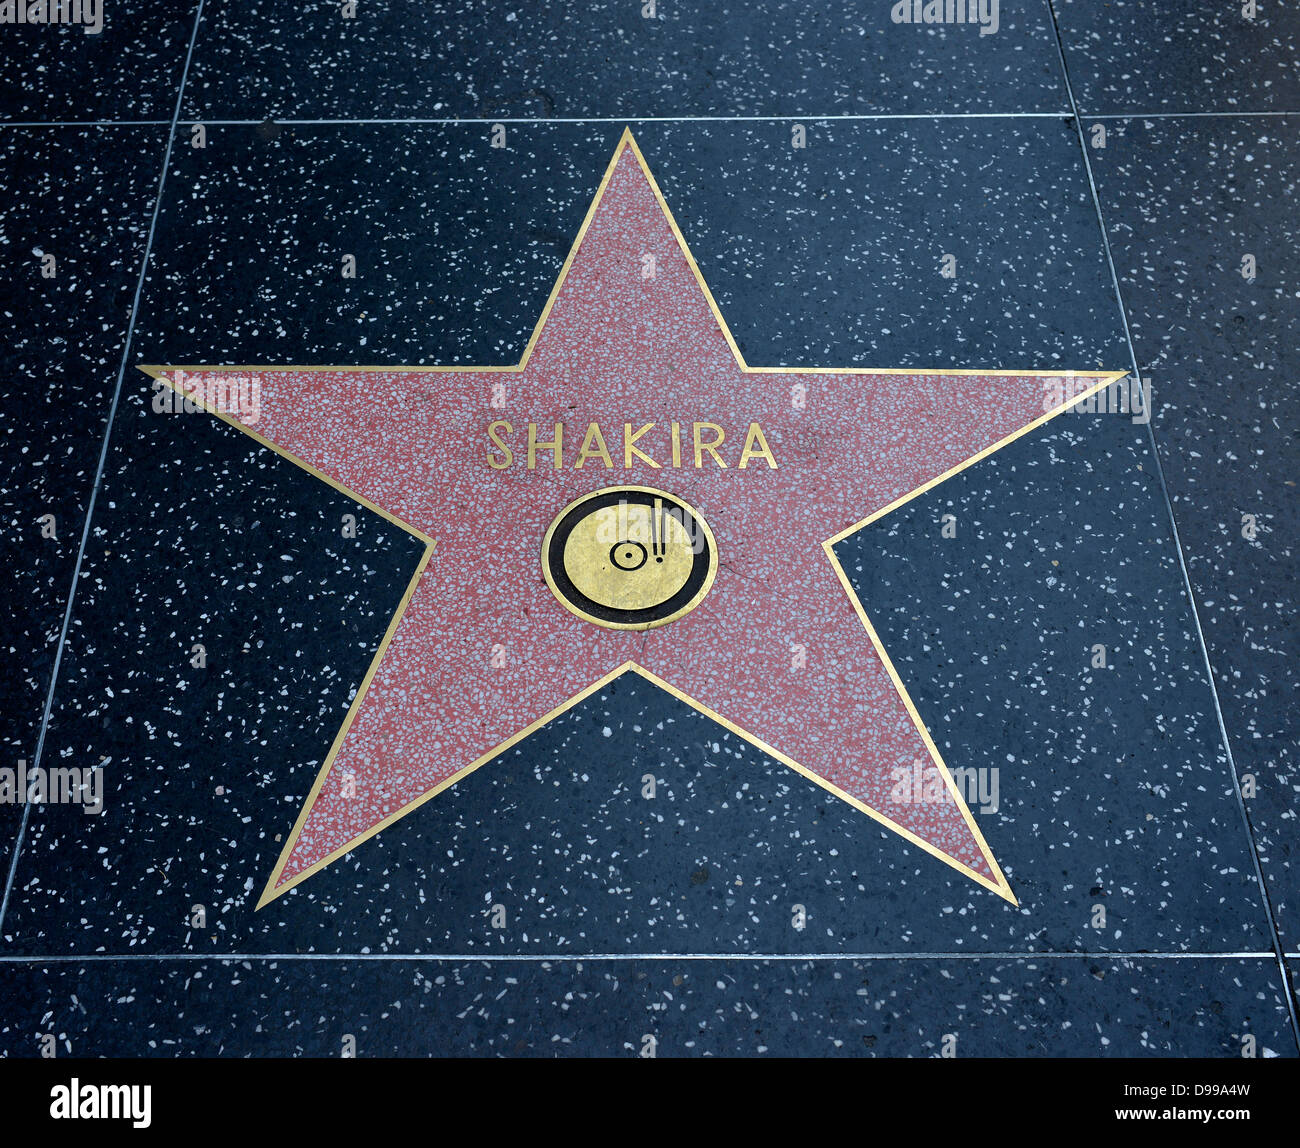 Terrazzo star for artists Shakira, category Music, Drumming of Fame, Hollywood boulevard, Hollywood, Los Angeles, - Stock Image